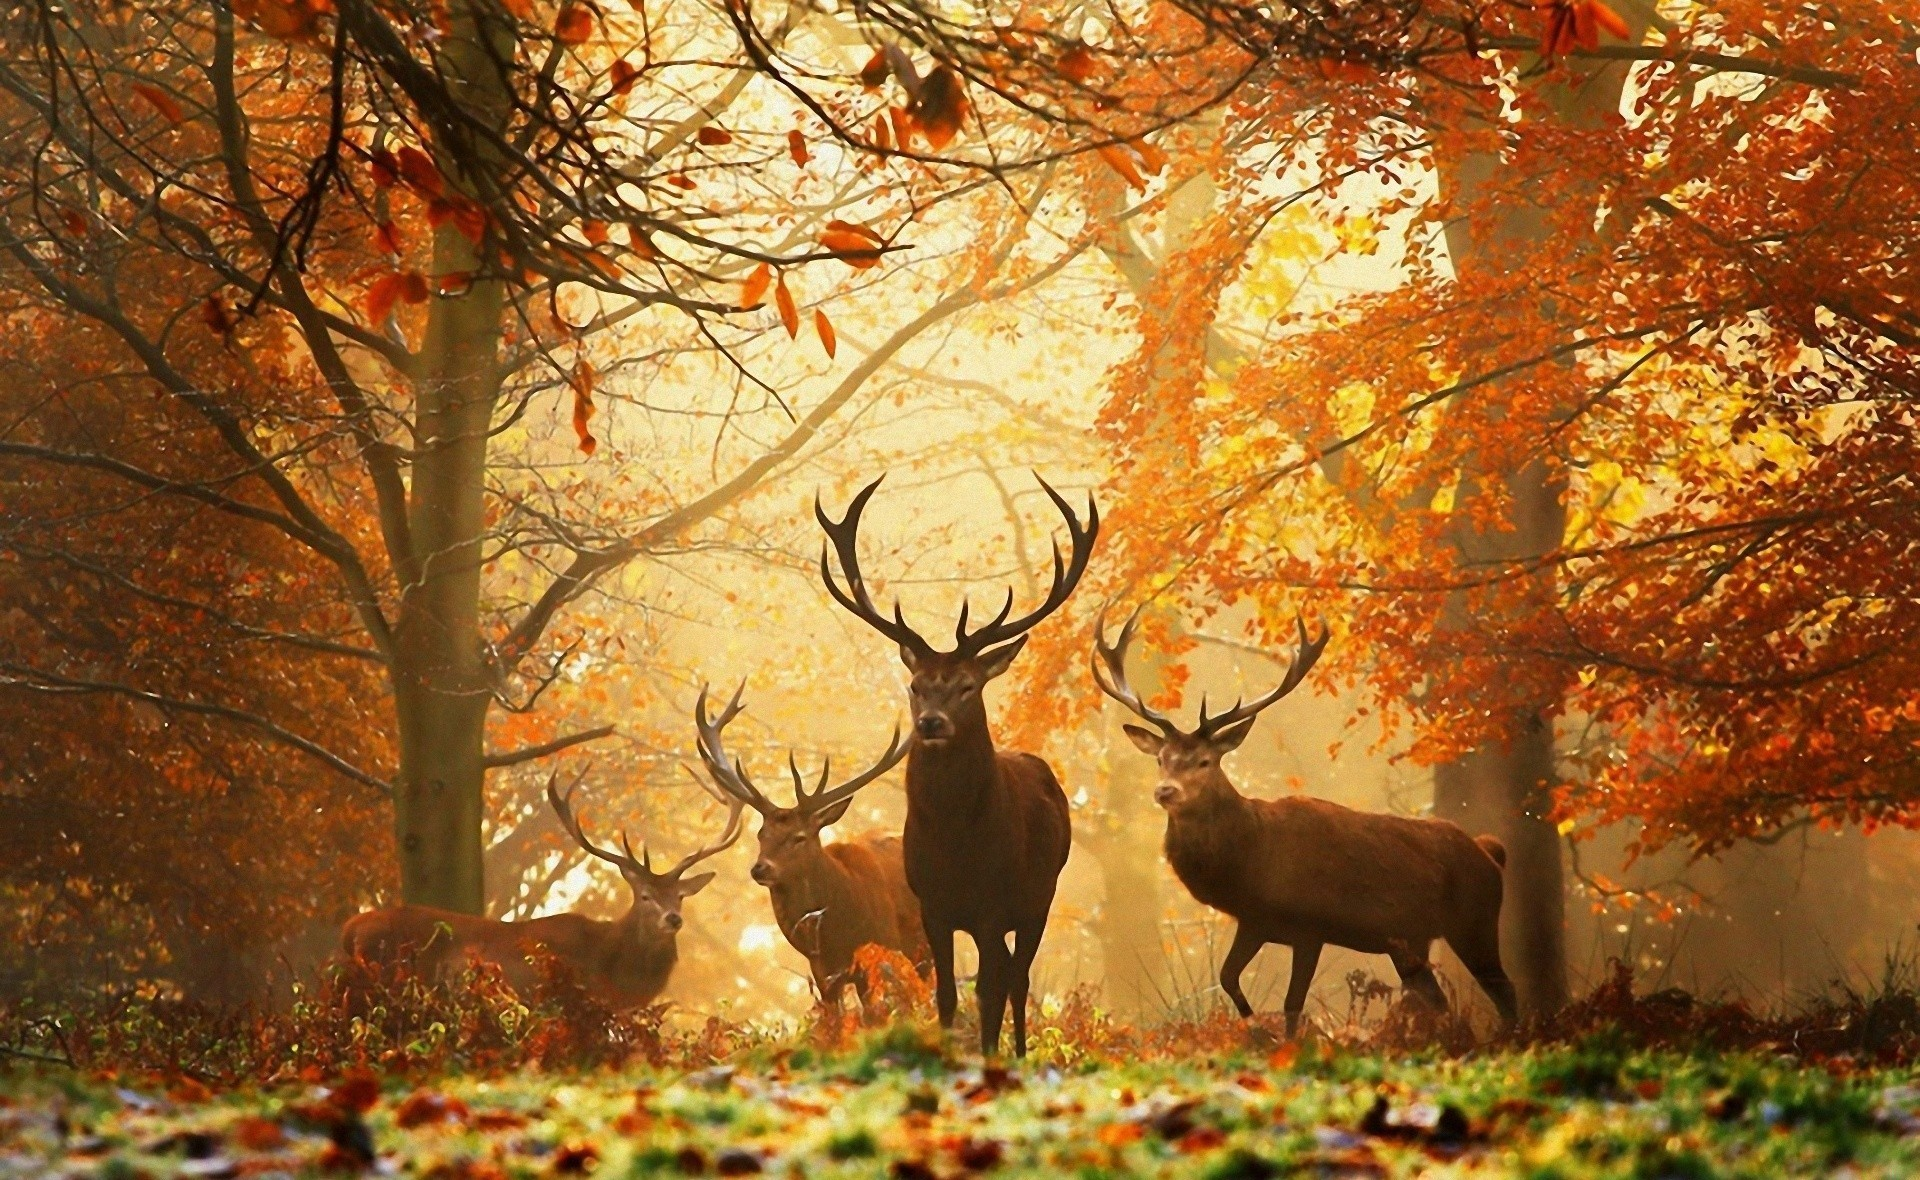 Deer Wallpaper for Walls wallpaper Deer Wallpaper for Walls hd 1920x1180